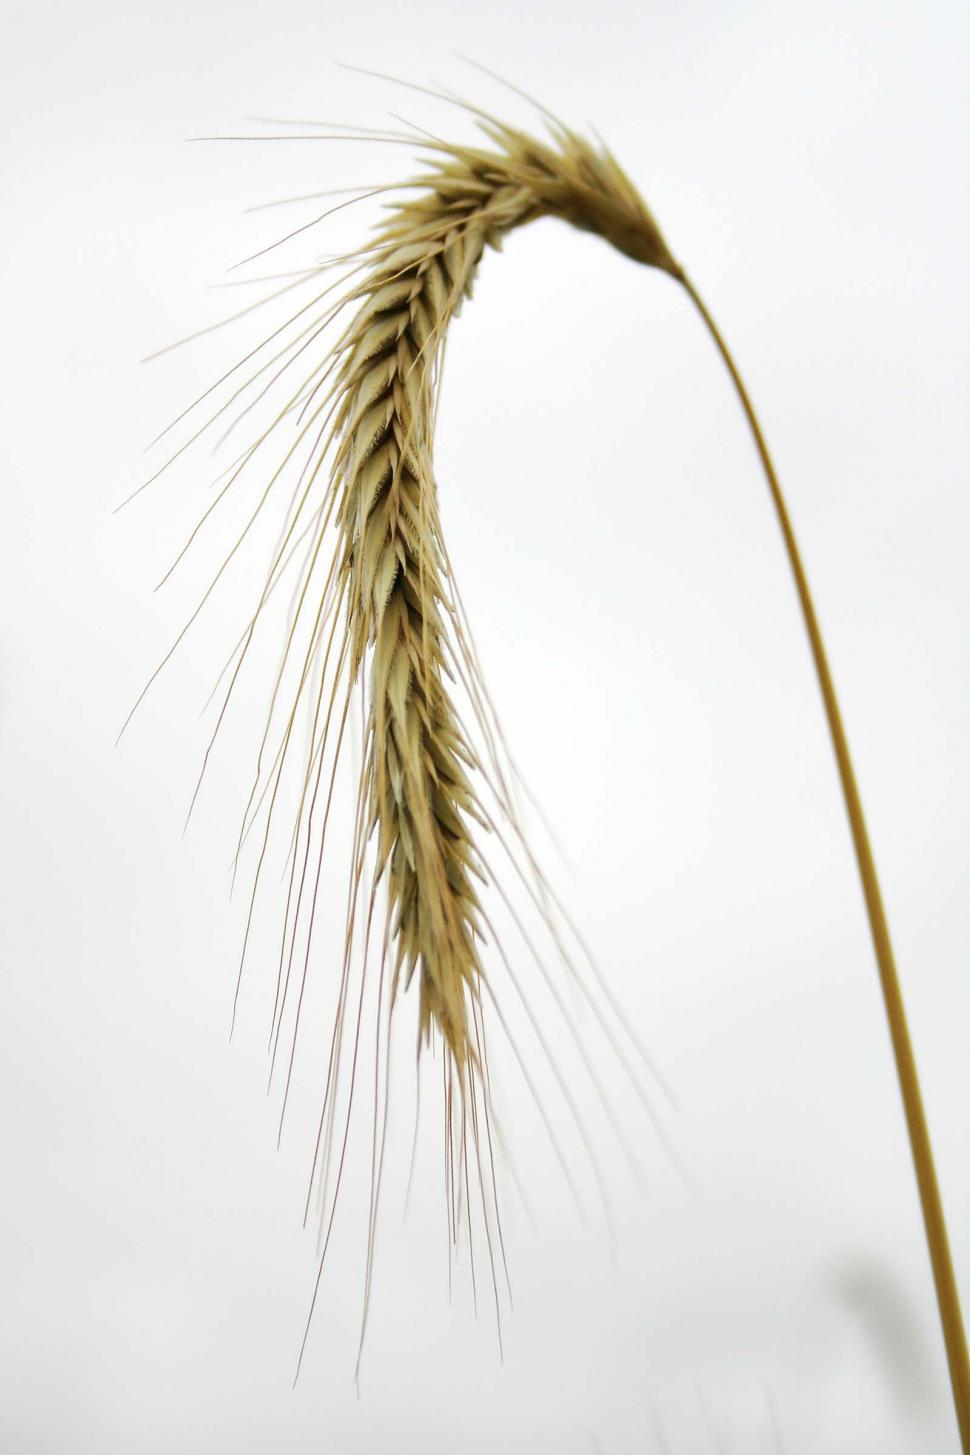 Download Free Stock HD Photo of Stalk of wheat Online